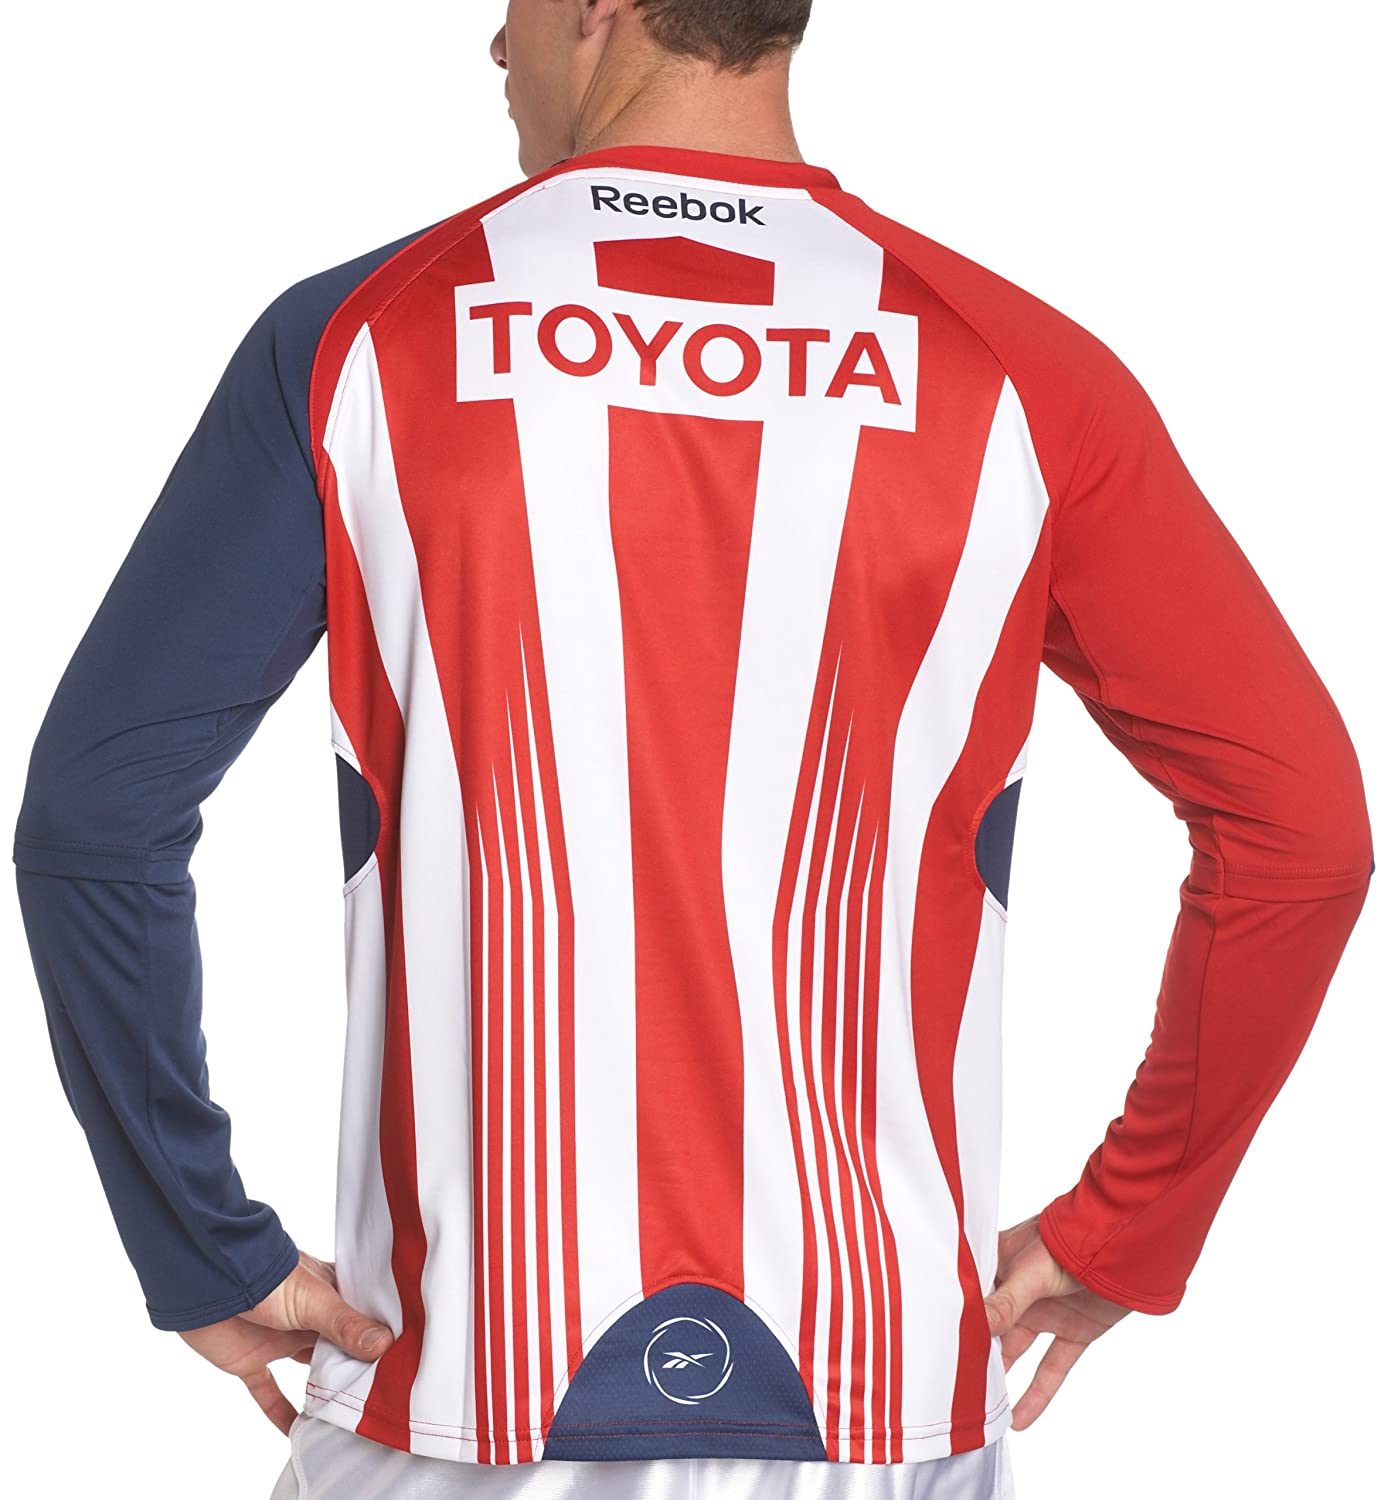 84ed2818913 Buy Chivas De Guadalajara Long-Sleeve Home Jersey, Flash Red, X-Large  Online at Low Prices in India - Amazon.in